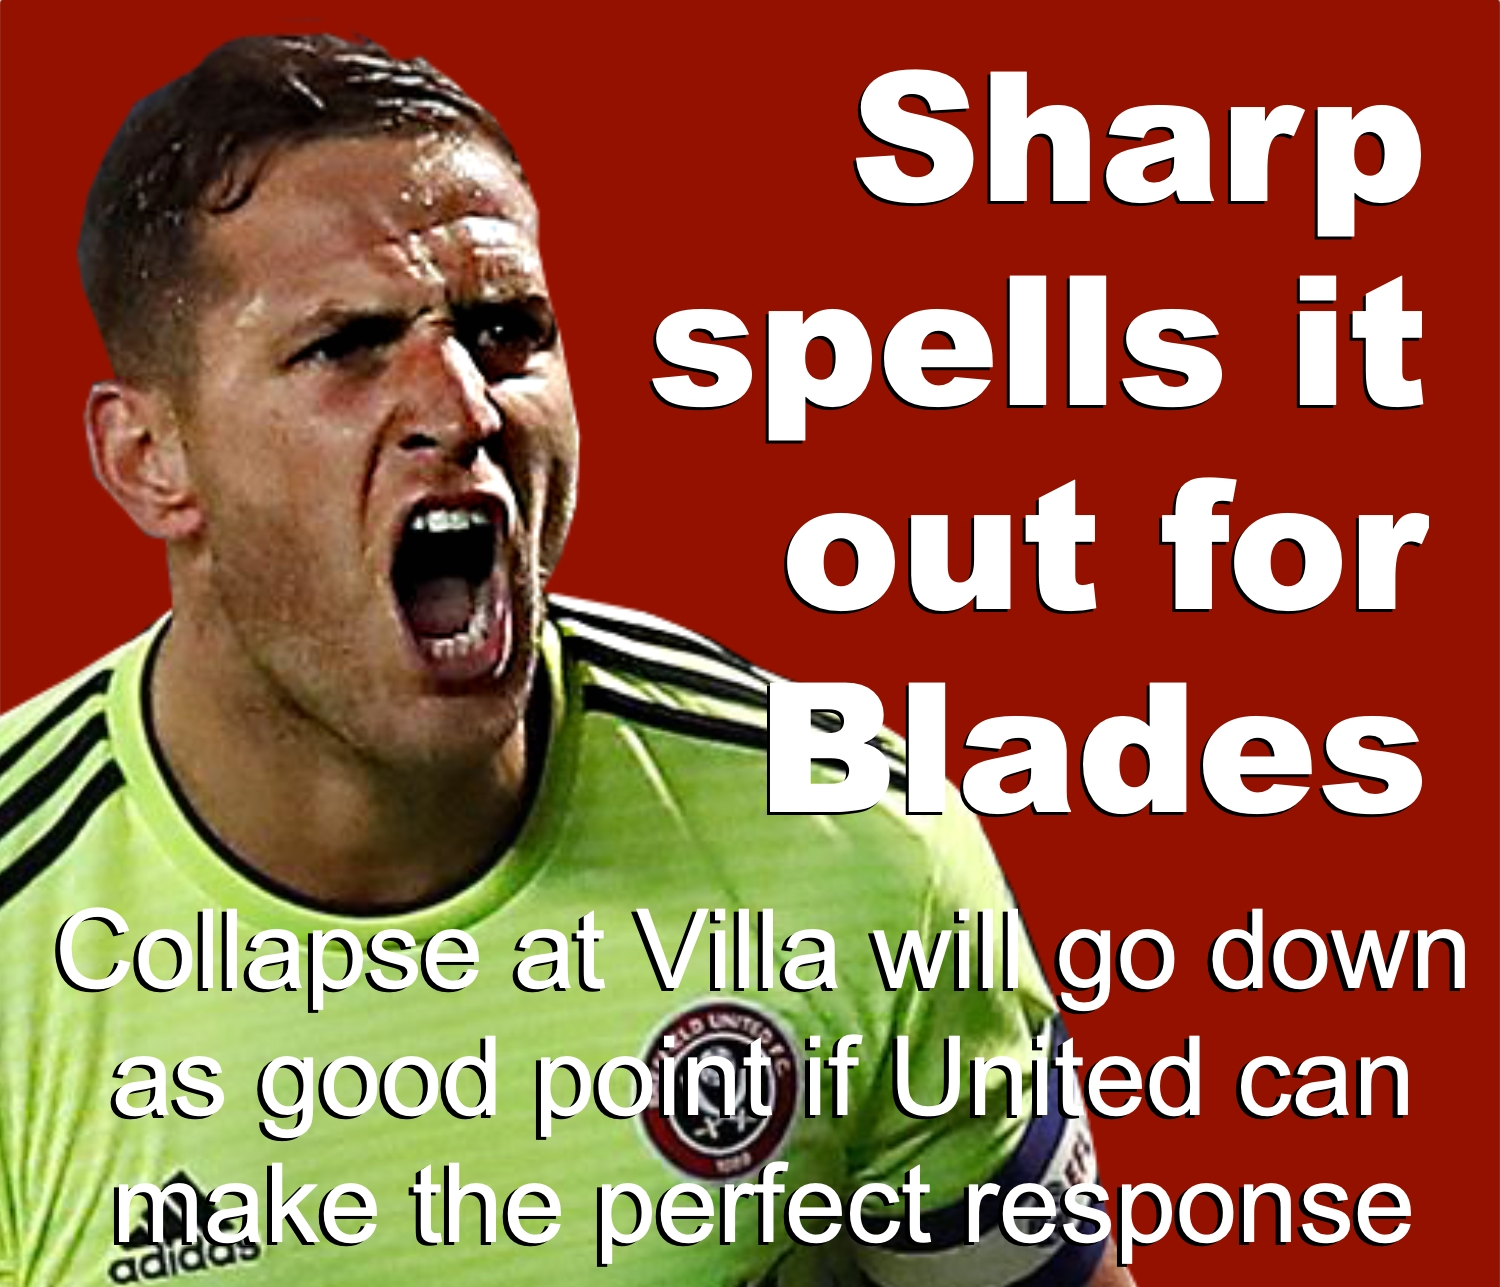 Hat-trick hero Billy Sharp spells it out for Blades after collapse at Villa